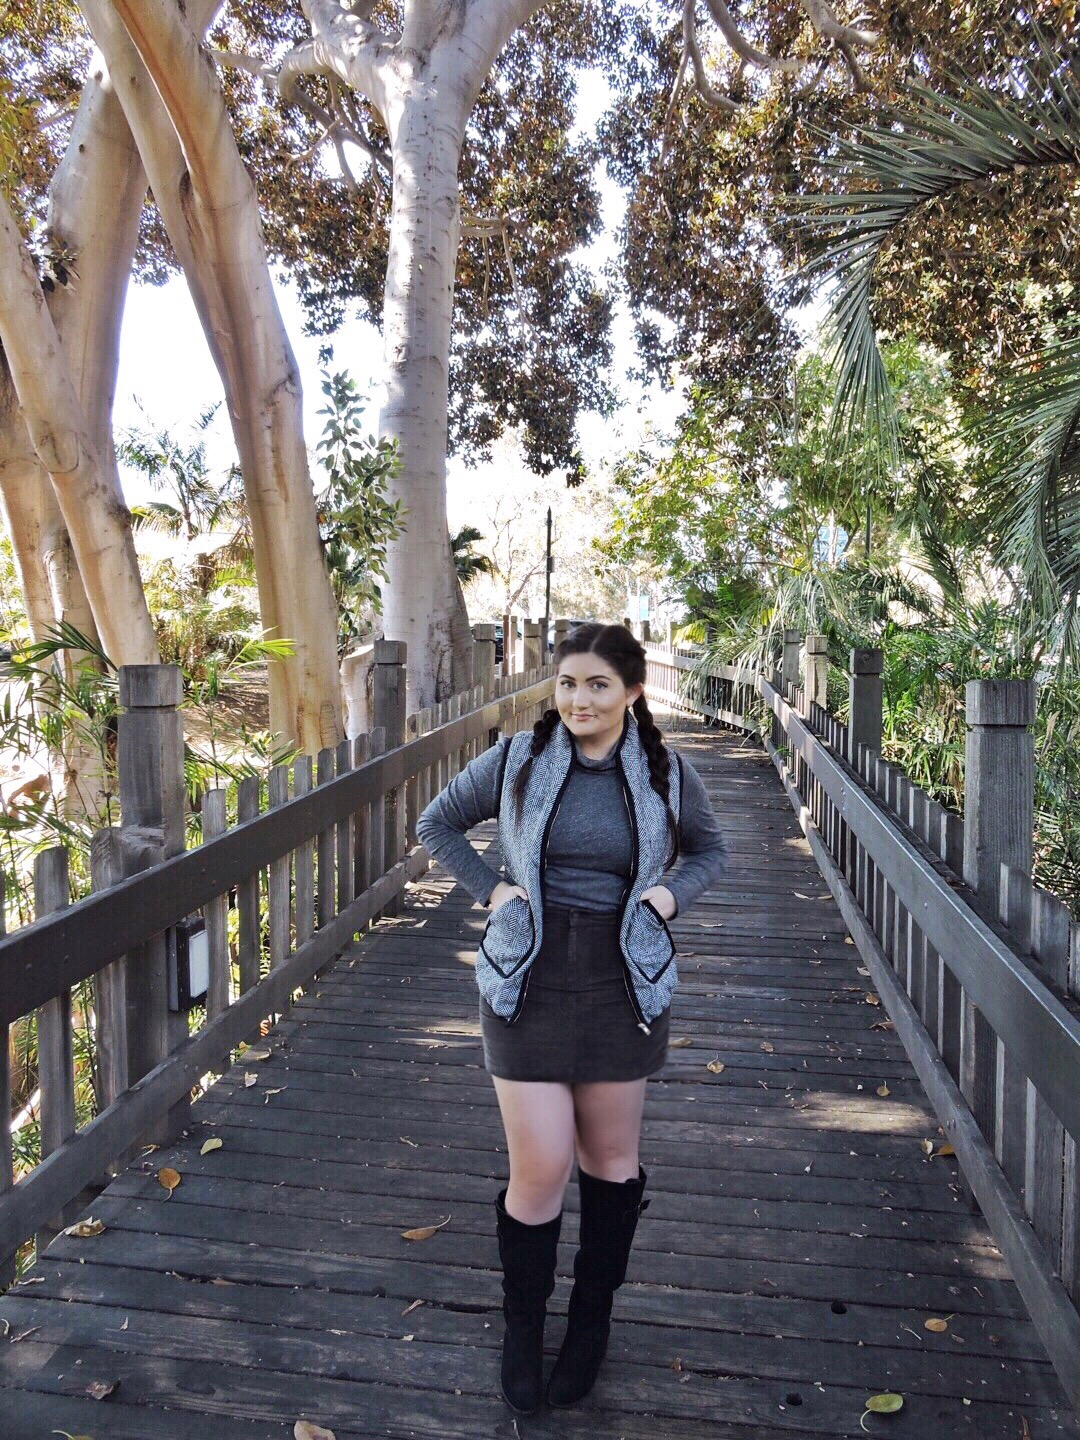 balboa park san diego steve madden quay australia urban outfitters simple addiction madewell sugarly fall